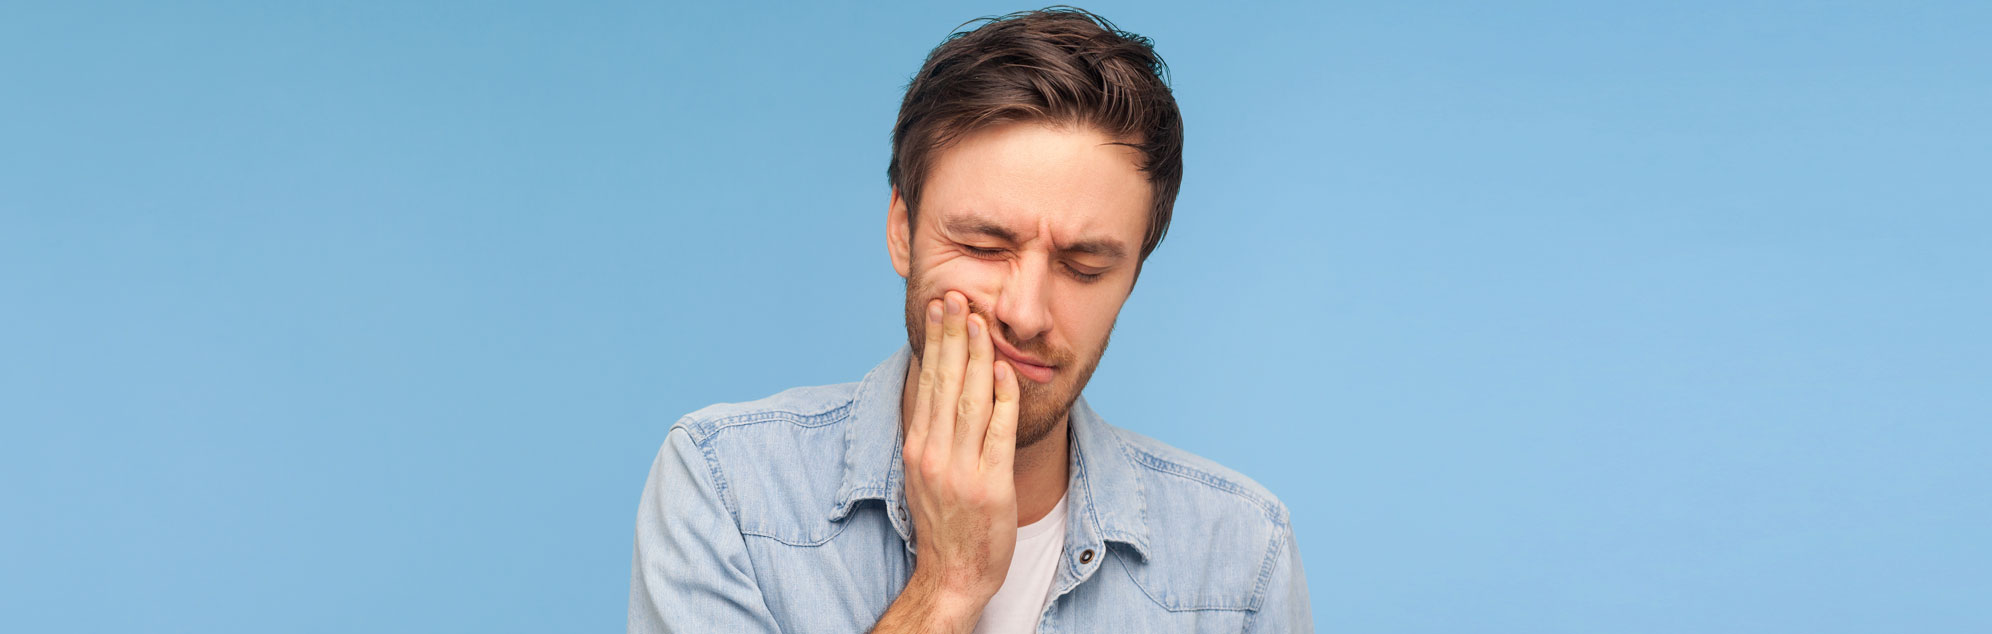 6 Ways to Improve Your Gums During National Gum Care Month